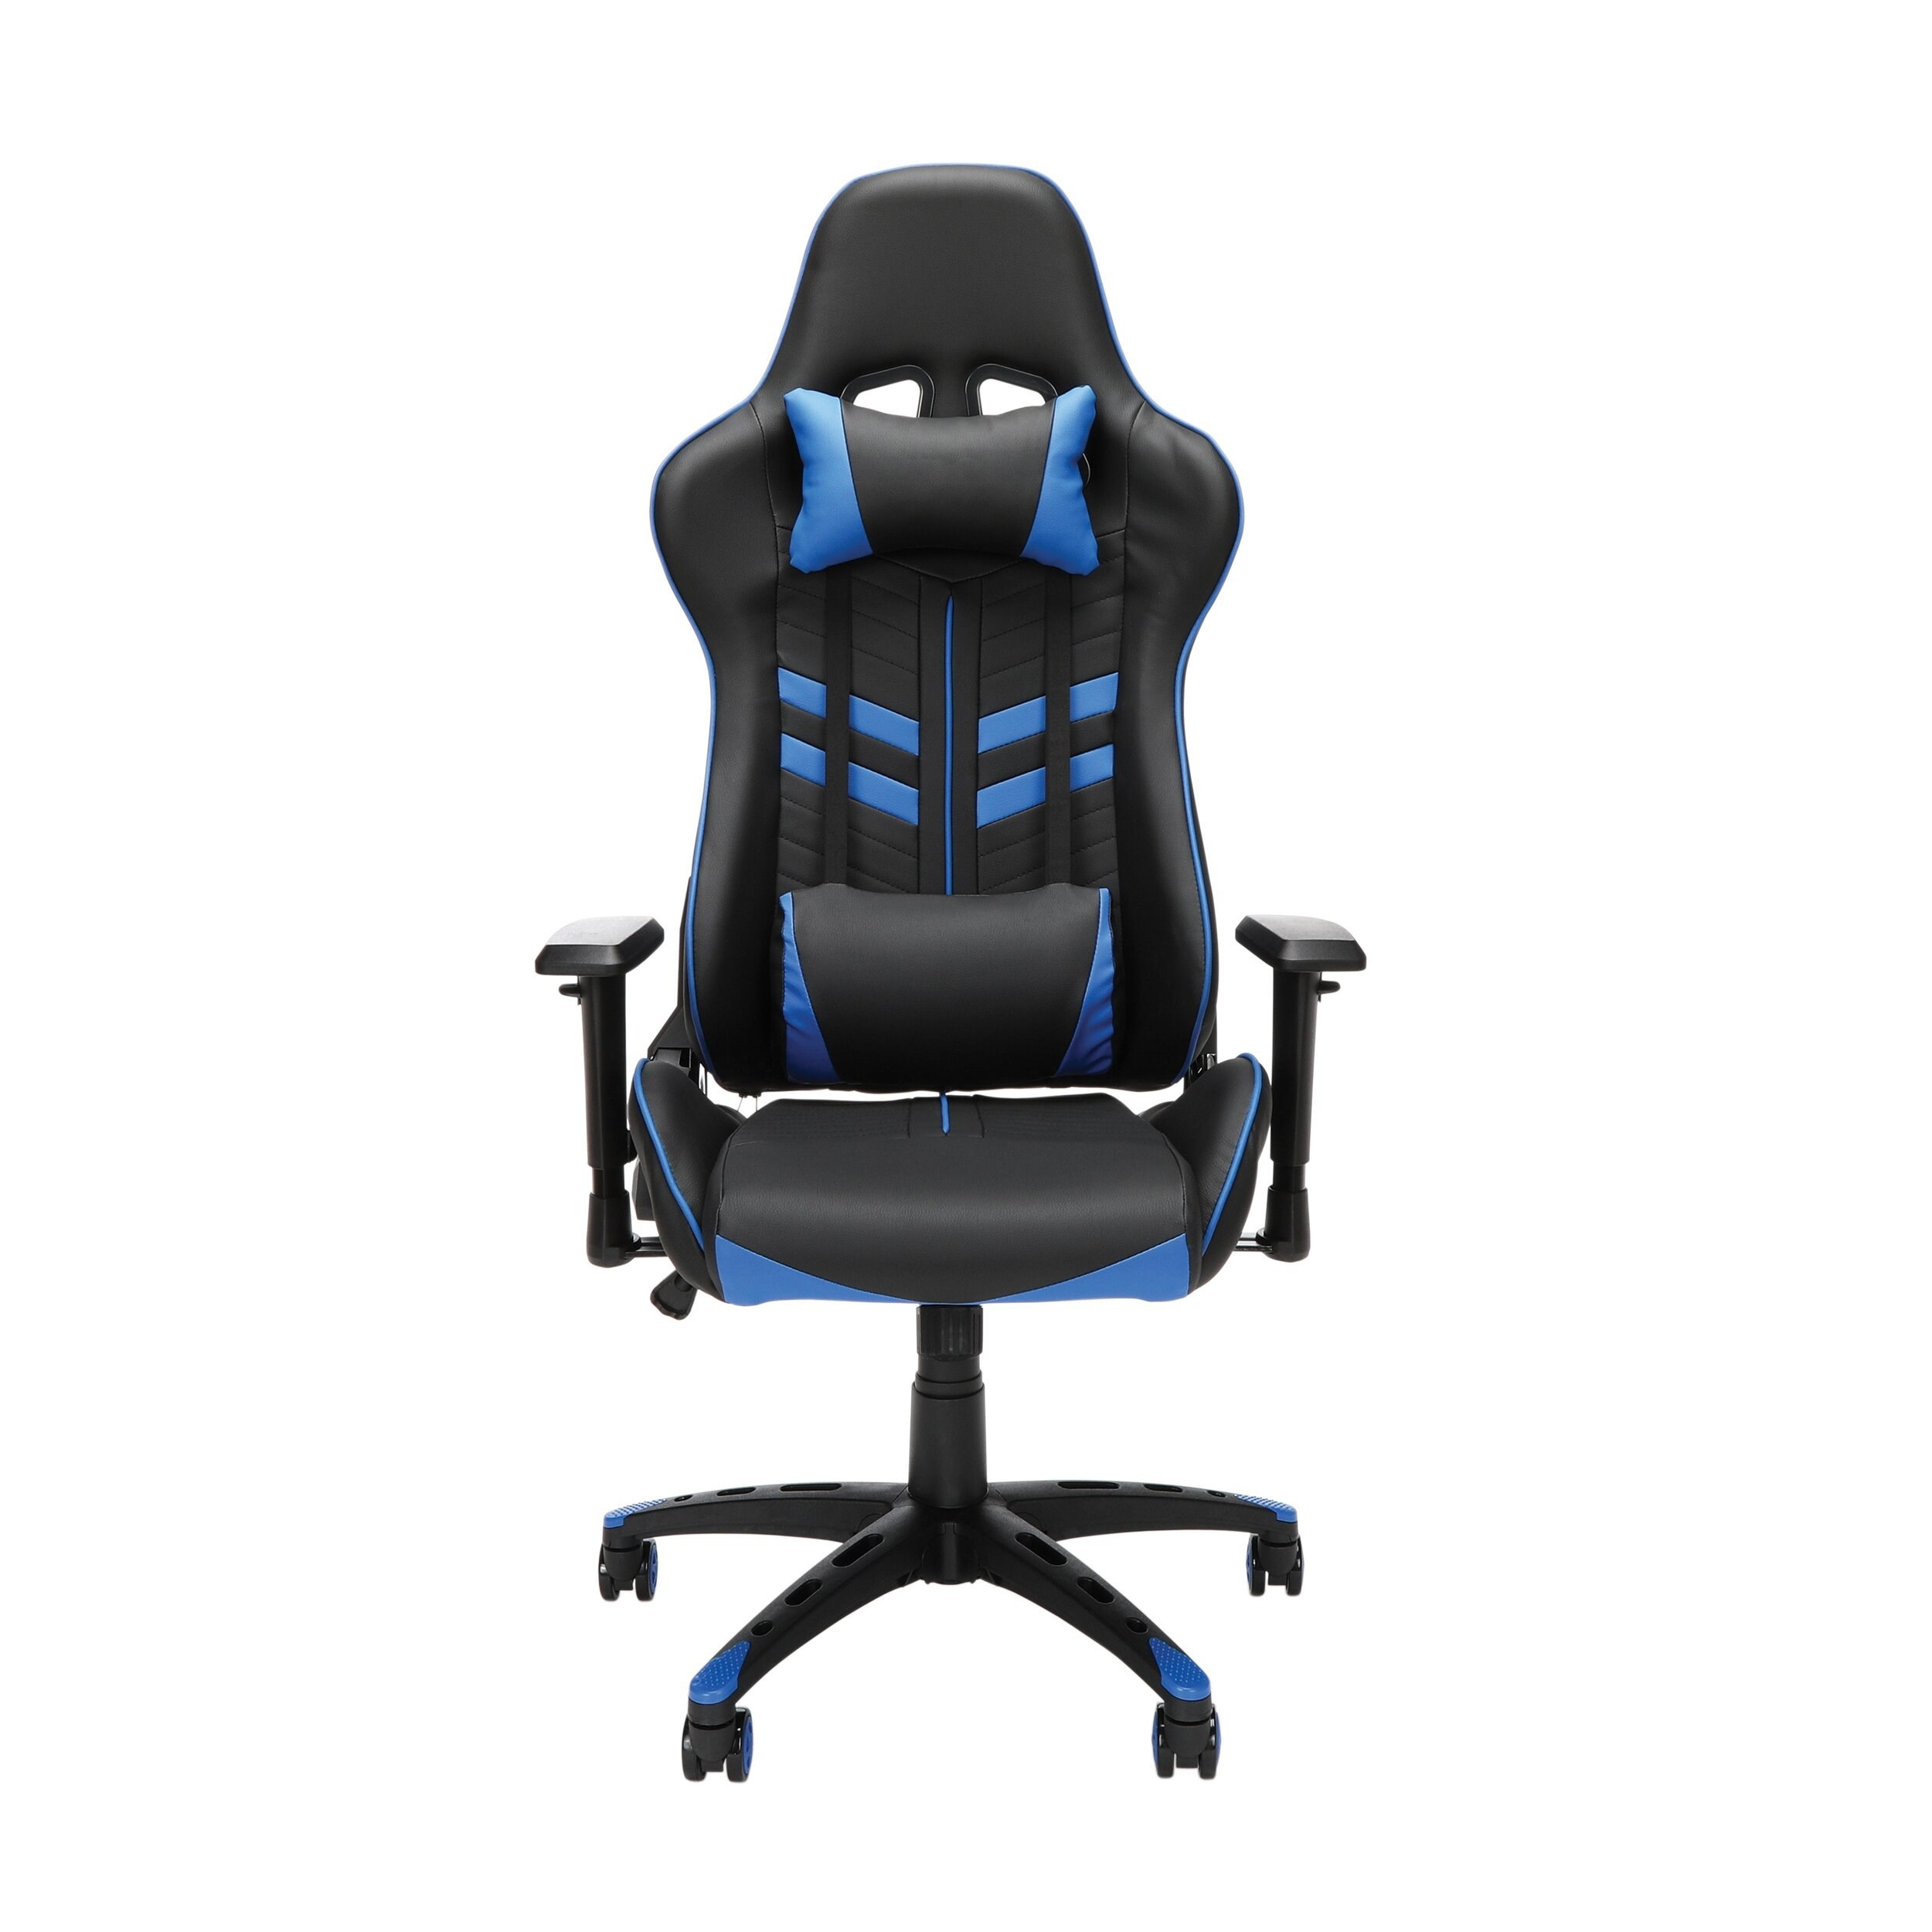 The gaming chair in black and blue